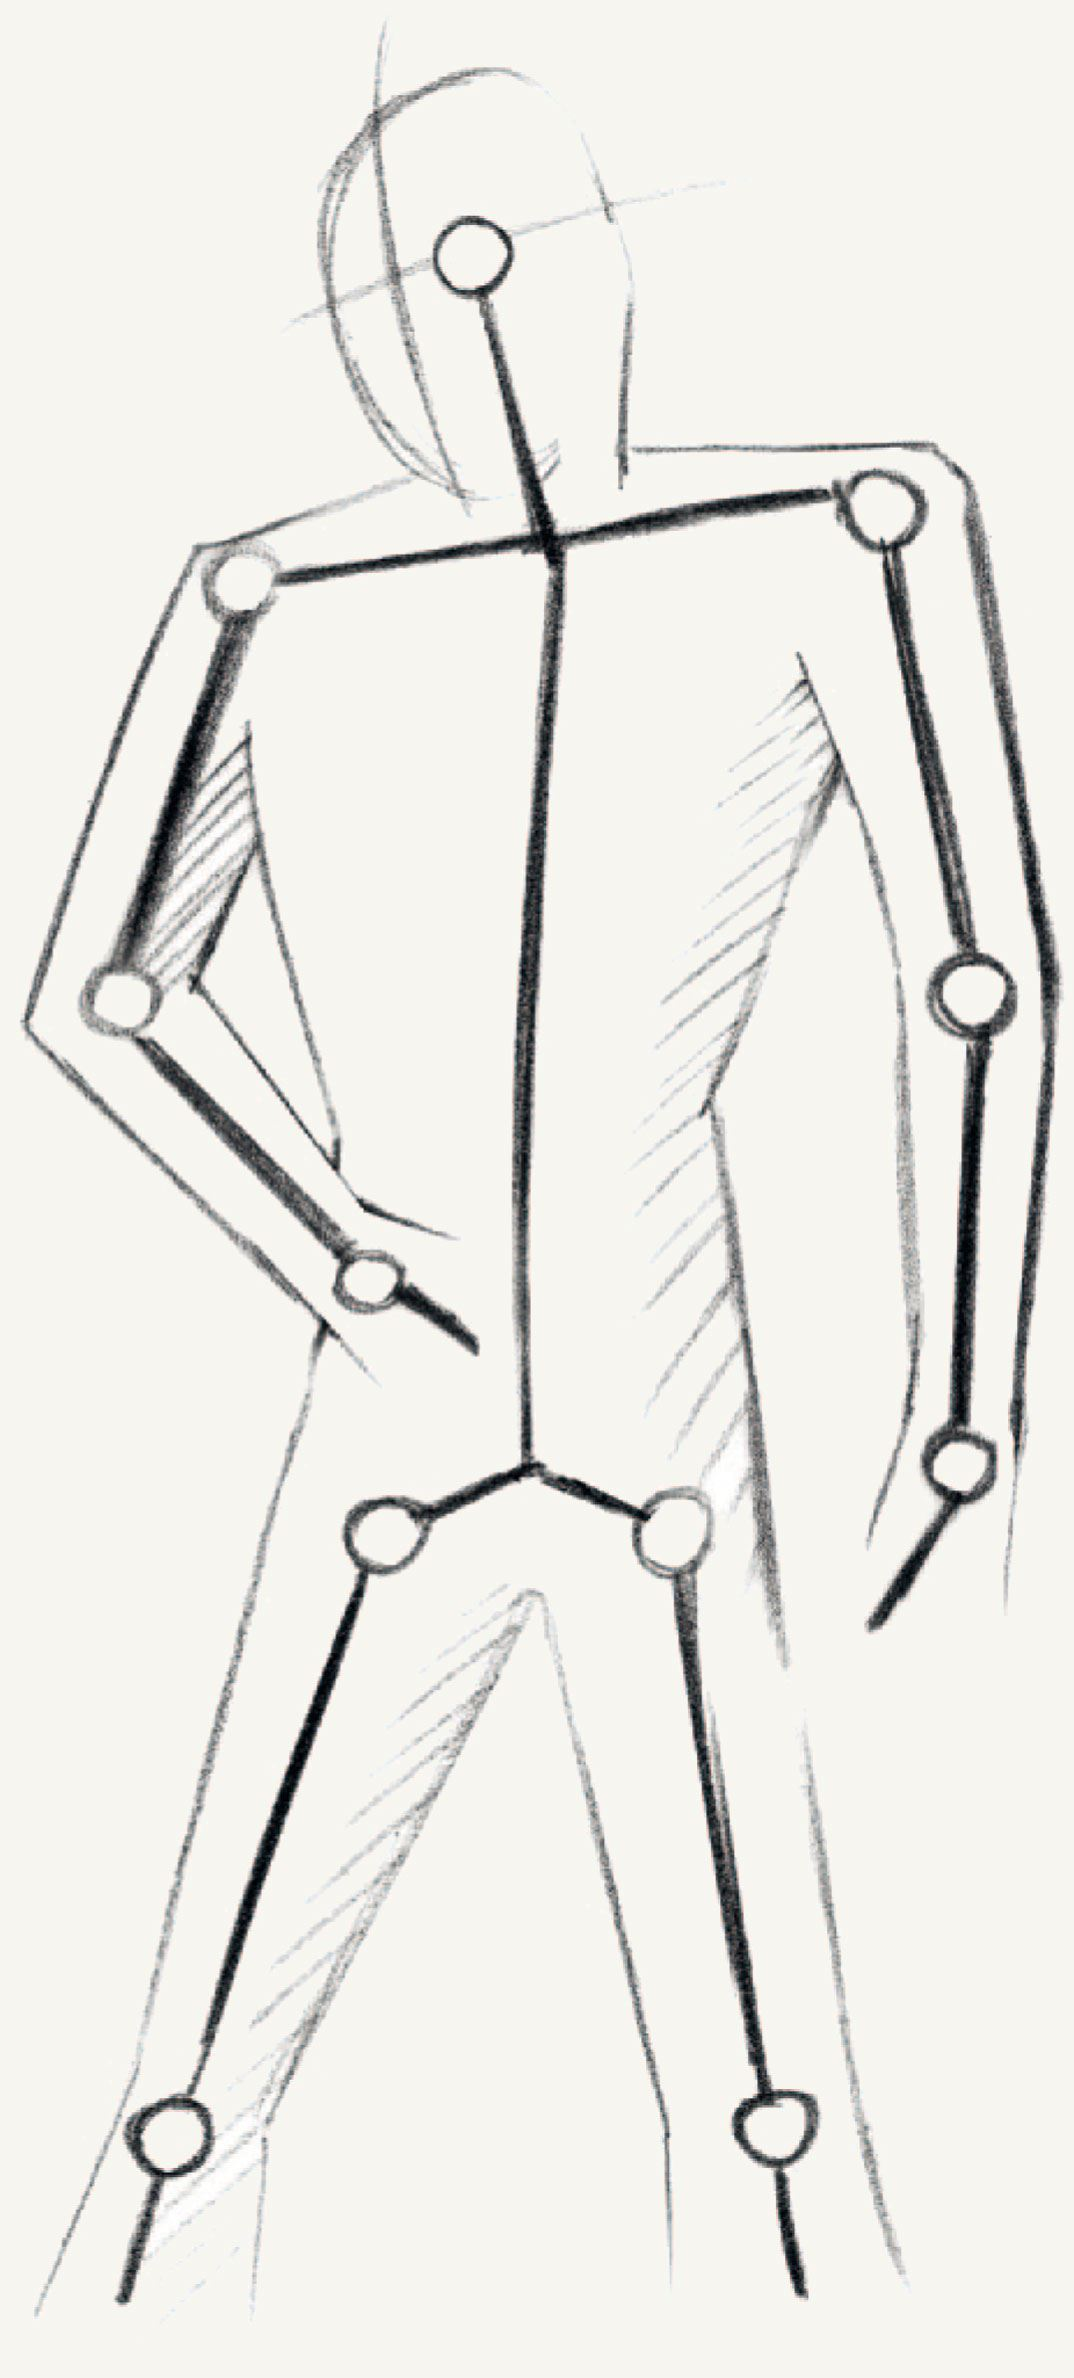 To draw your figure first make a preliminary sketch on the a4 drawing paper it is best to start with a simple stick figure and then add the joints to it